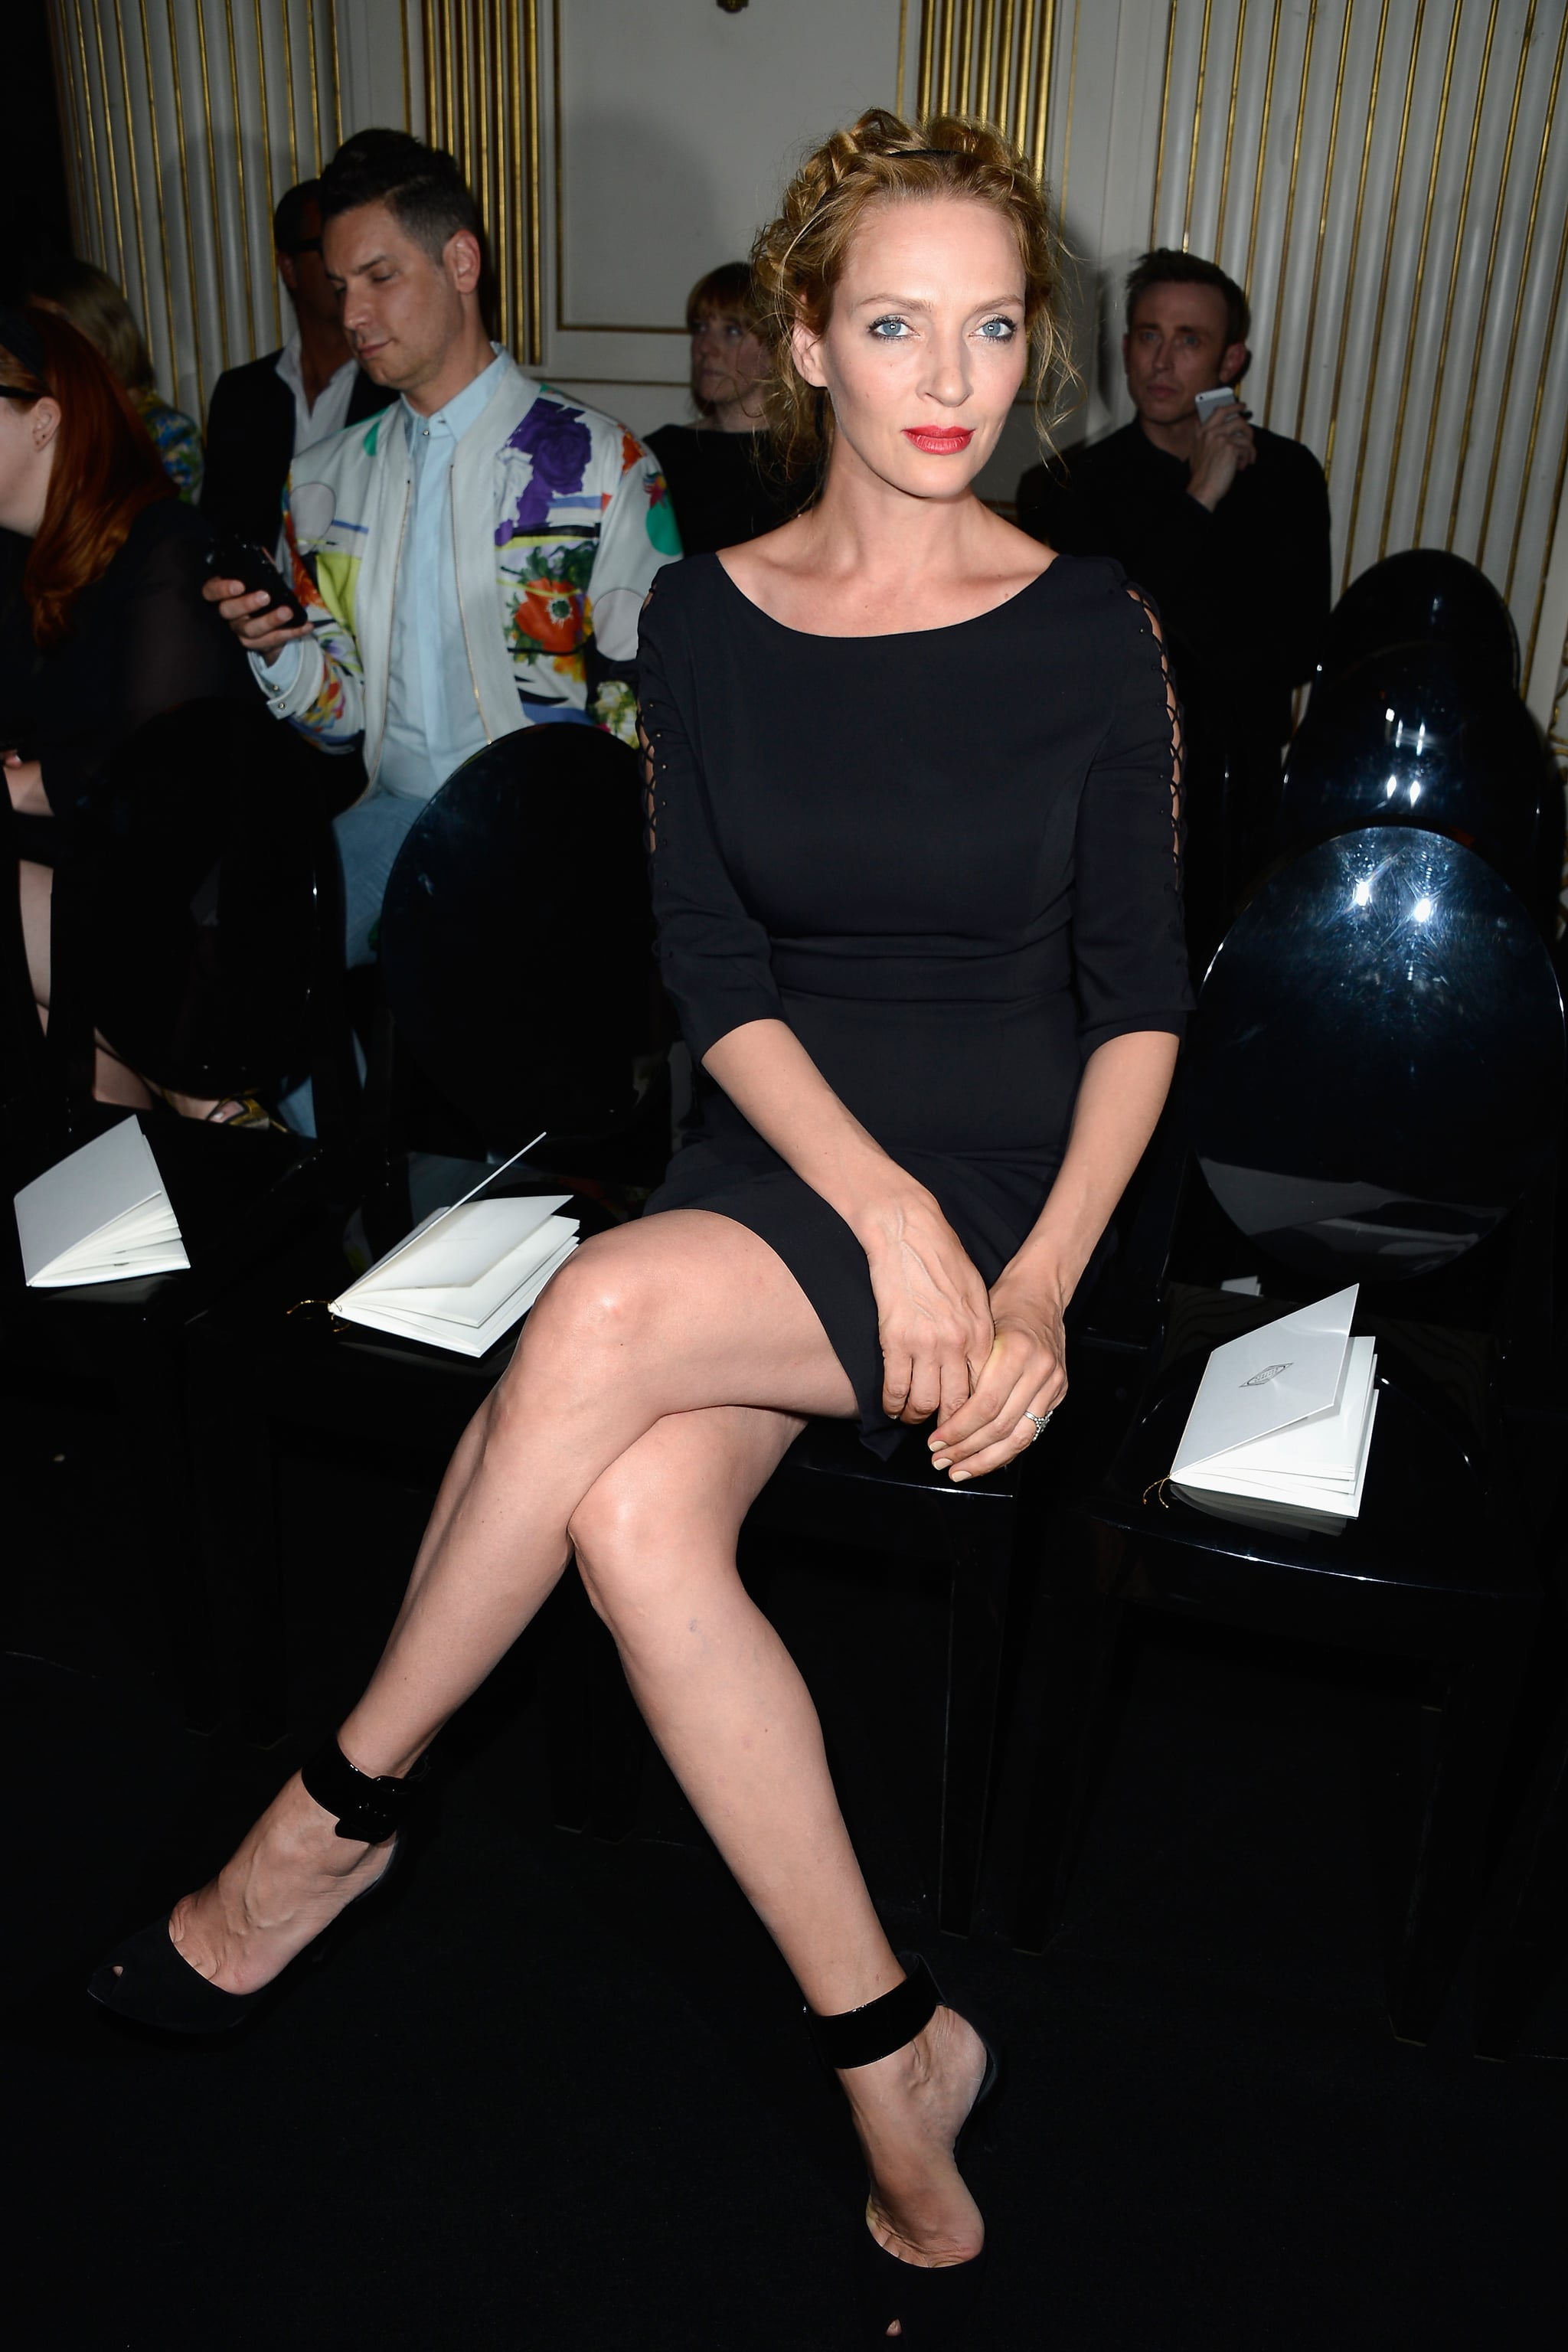 Uma Thurman took in Versace's couture show in all black. She put her long legs on display in a little black Versace dress and sexy ankle-strap pumps.